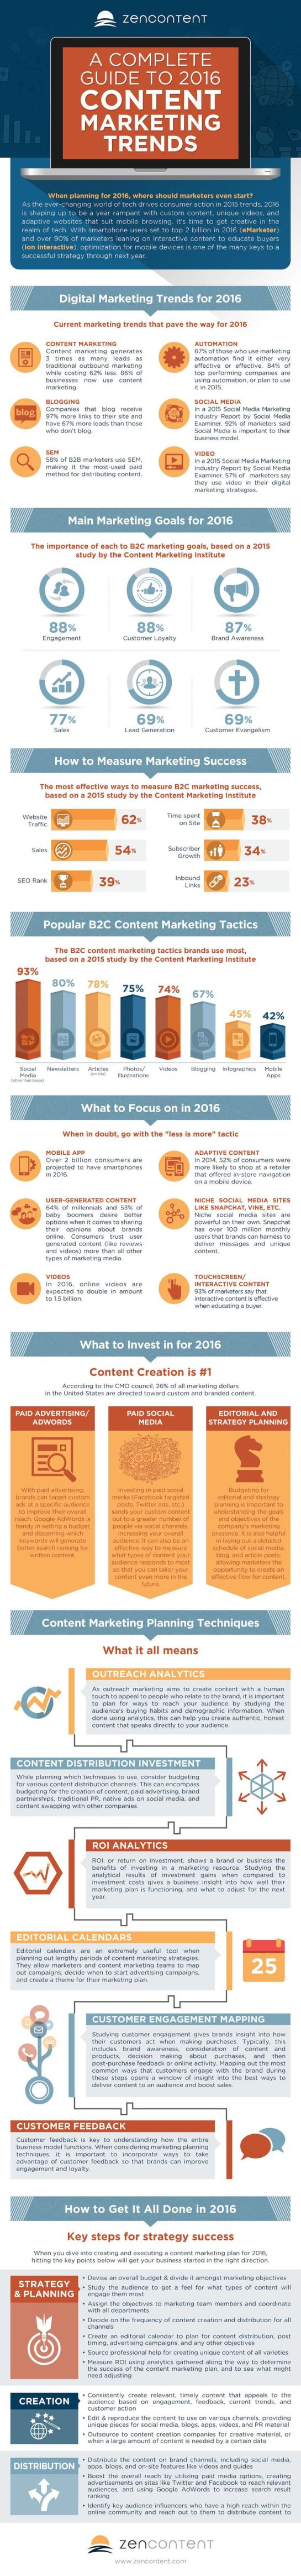 Tendances du Content Marketing en 2016 - AUTOVEILLE